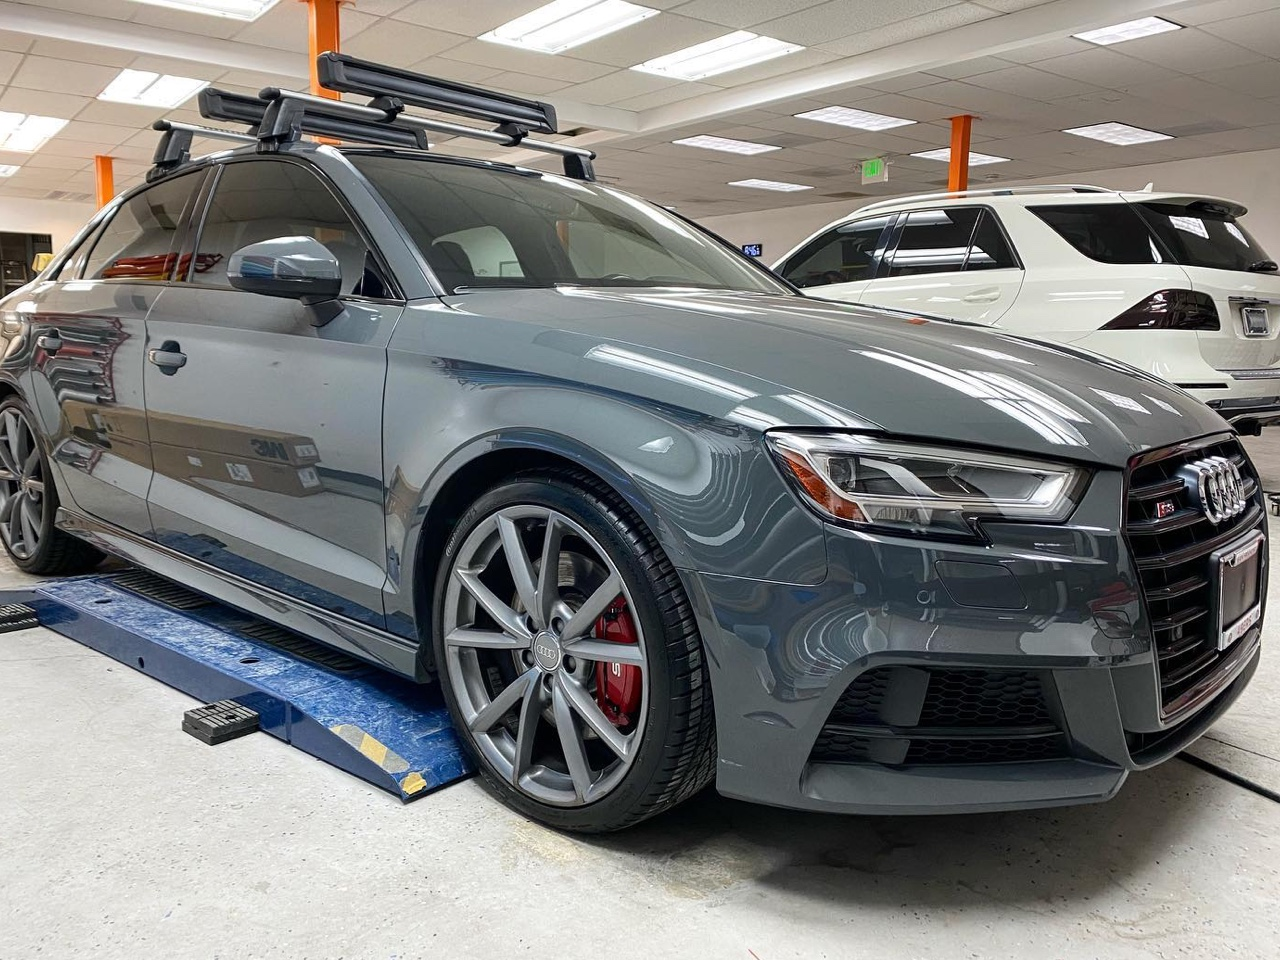 Audi S3 tinted window front side view